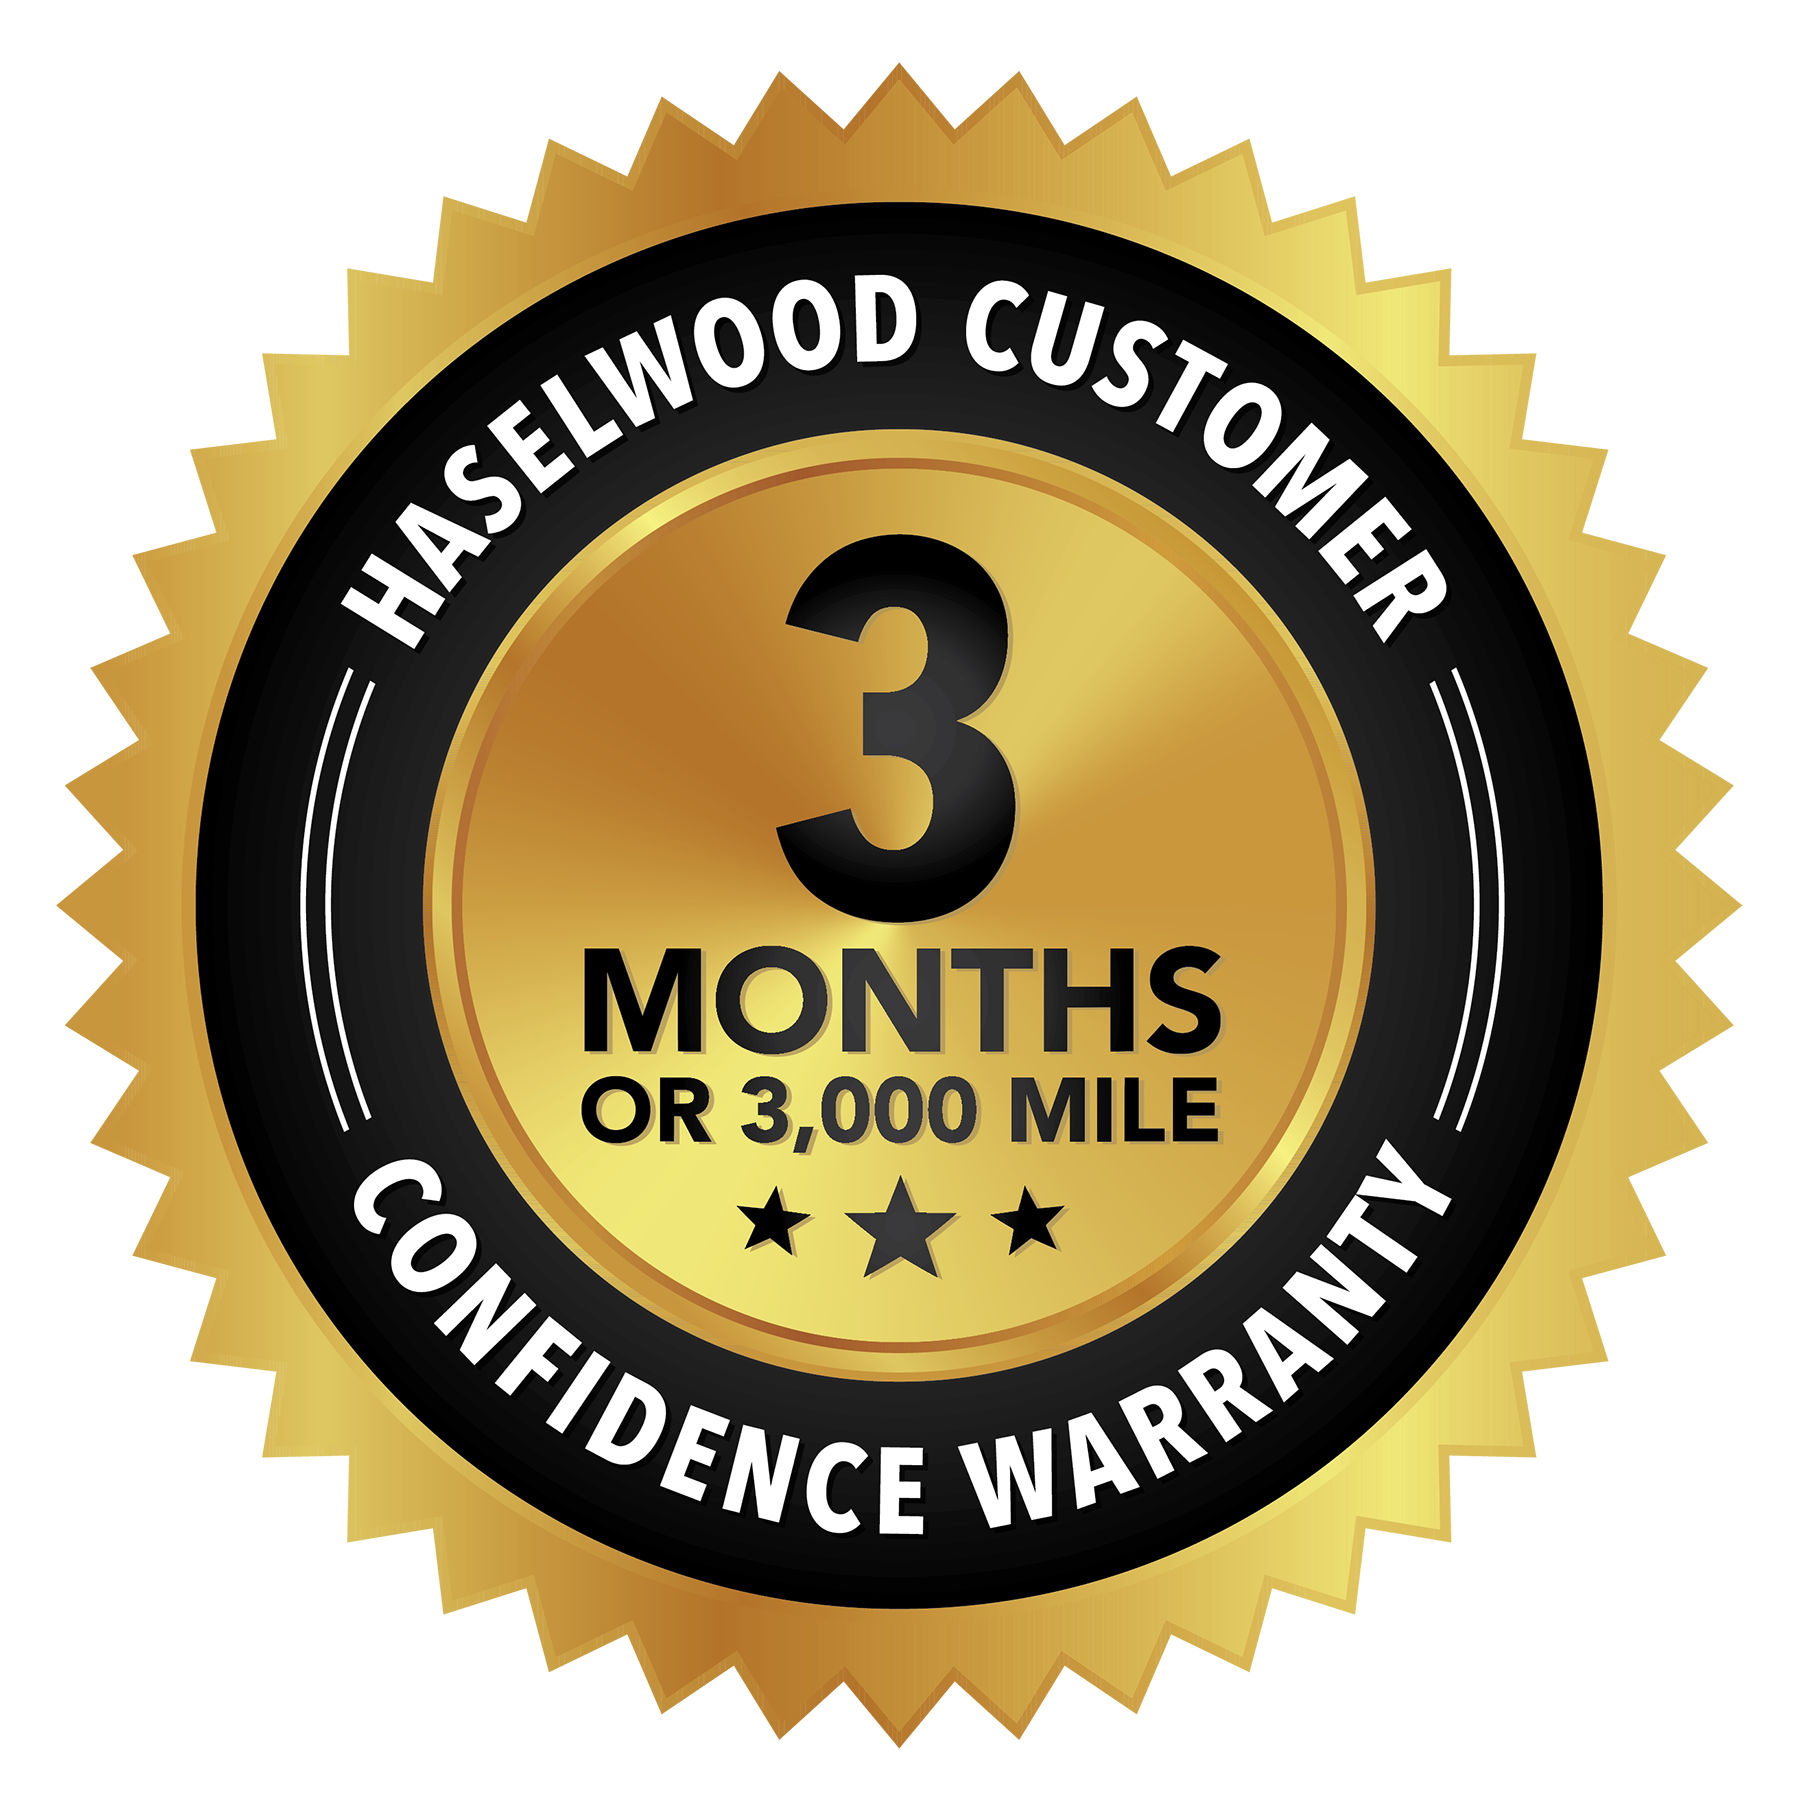 Haselwood Customer Confidence Warranty | West Hills Autoplex